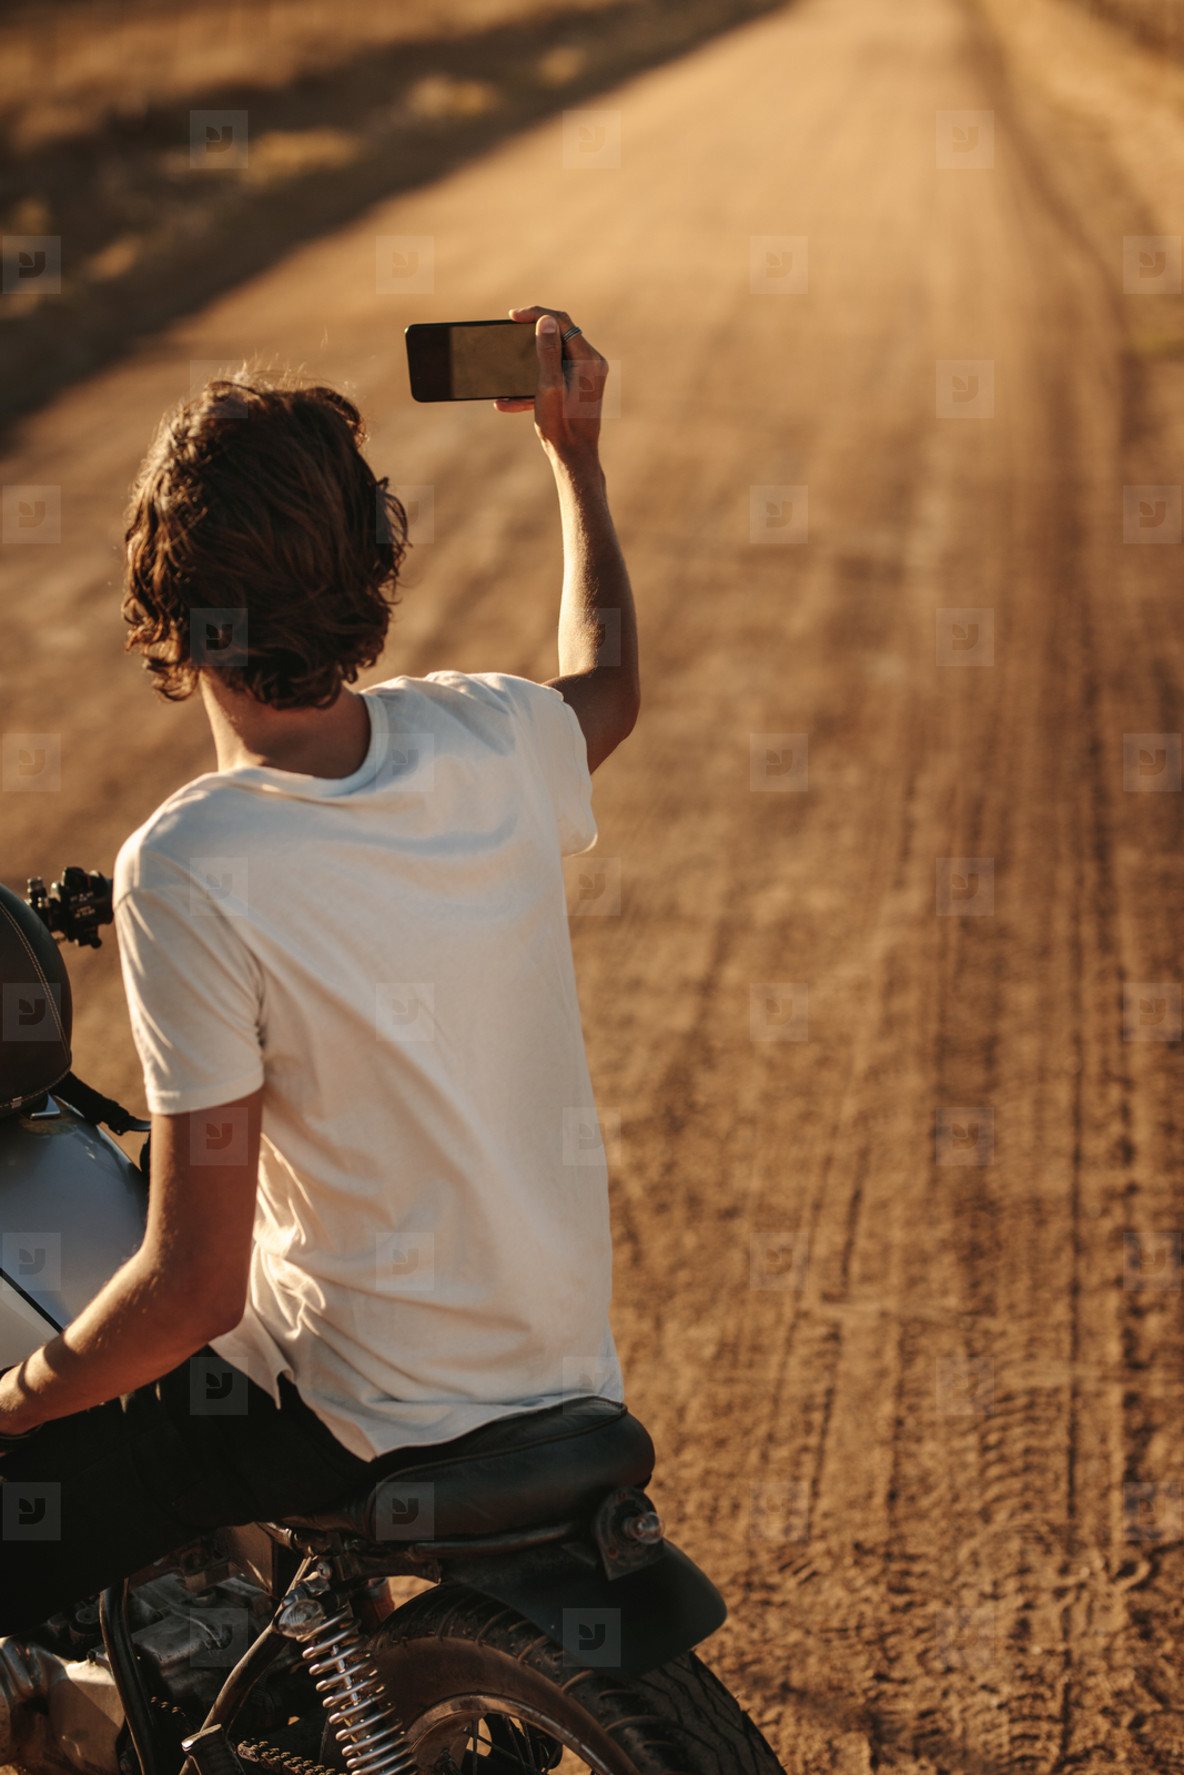 Rider capturing memories of his countryside ride